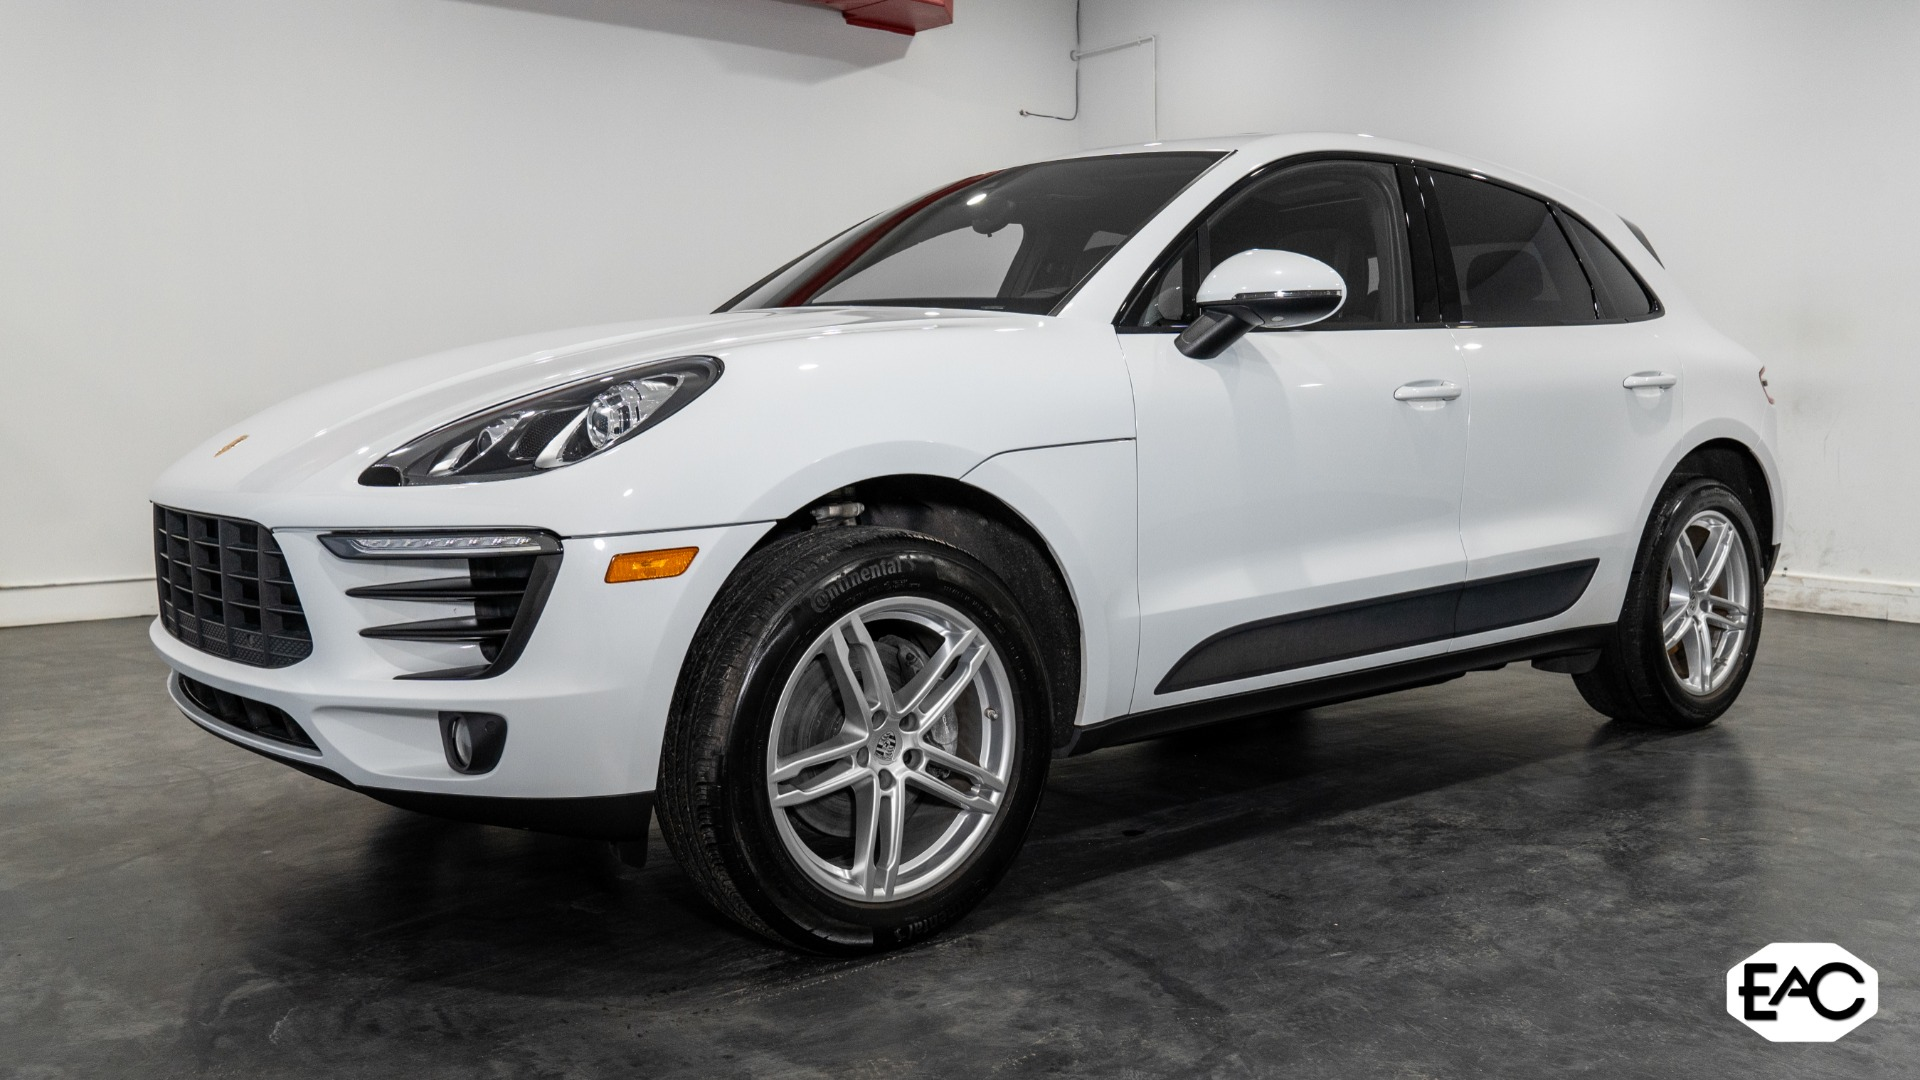 Used 2018 Porsche Macan for sale $39,990 at Empire Auto Collection in Warren MI 48091 1